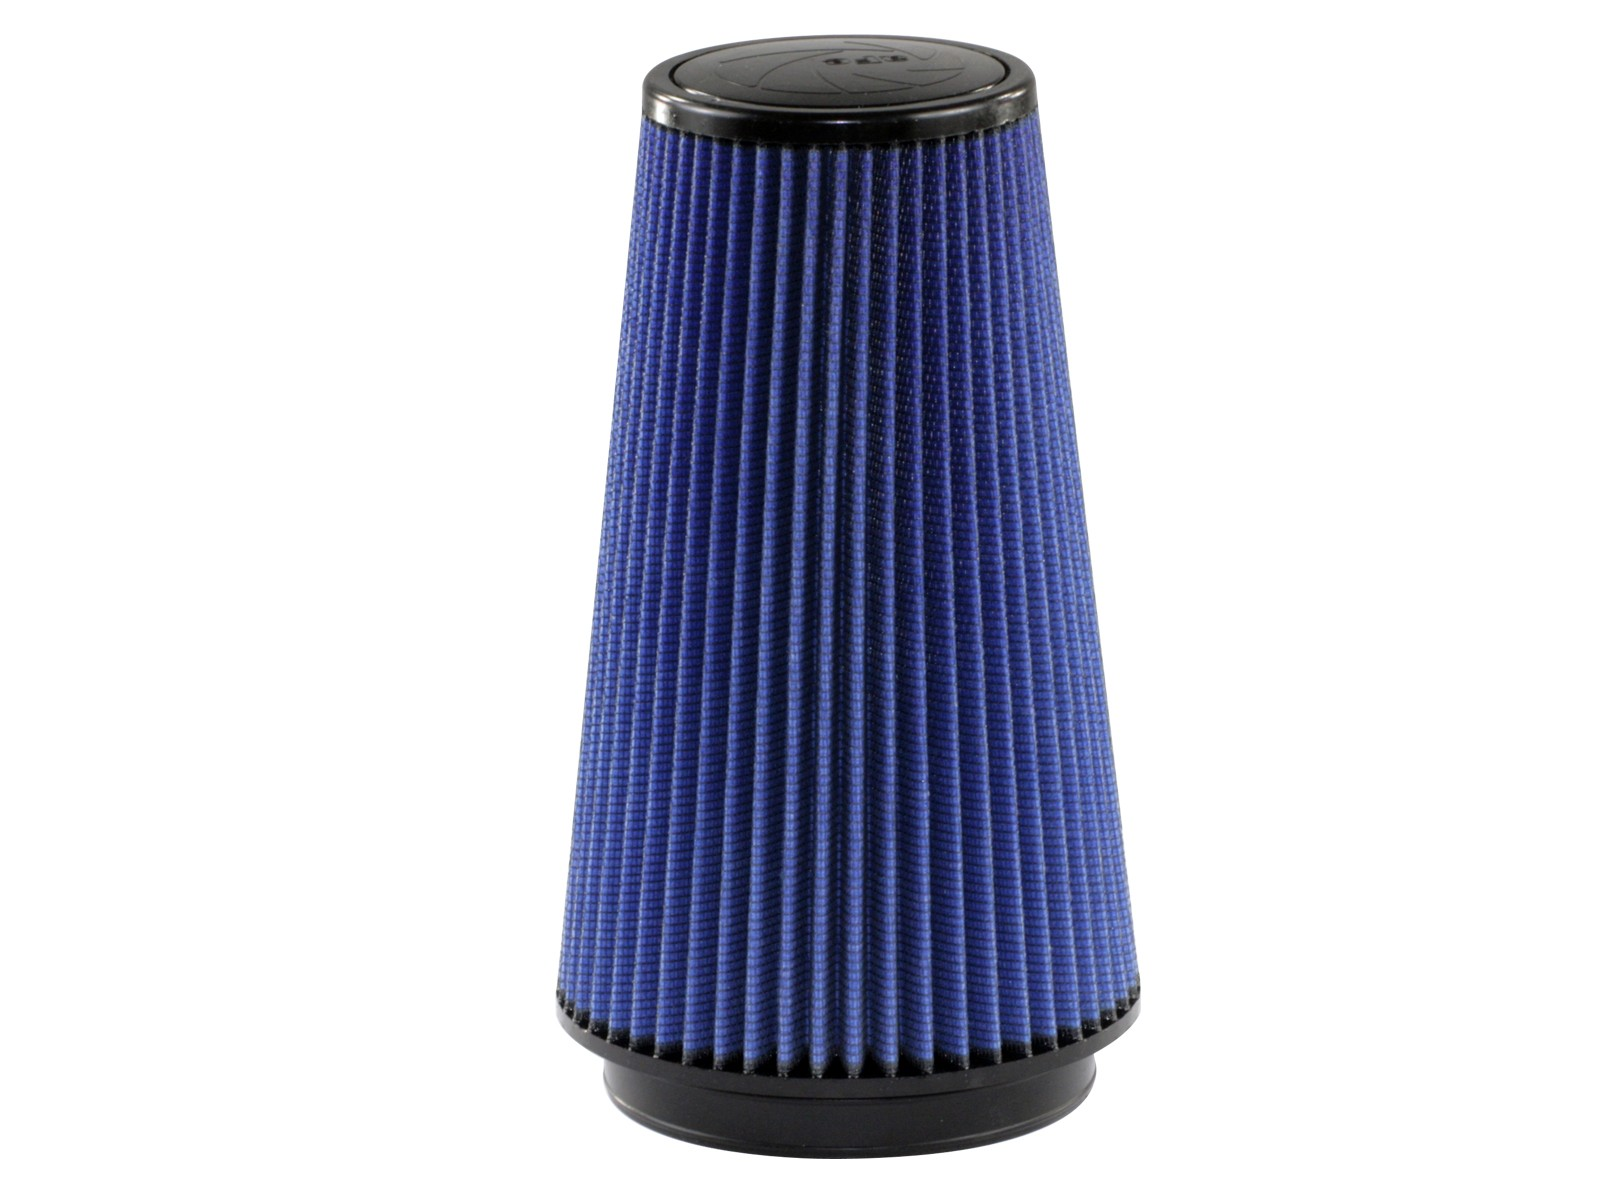 aFe POWER 24-55512 Magnum FLOW Pro 5R Air Filter